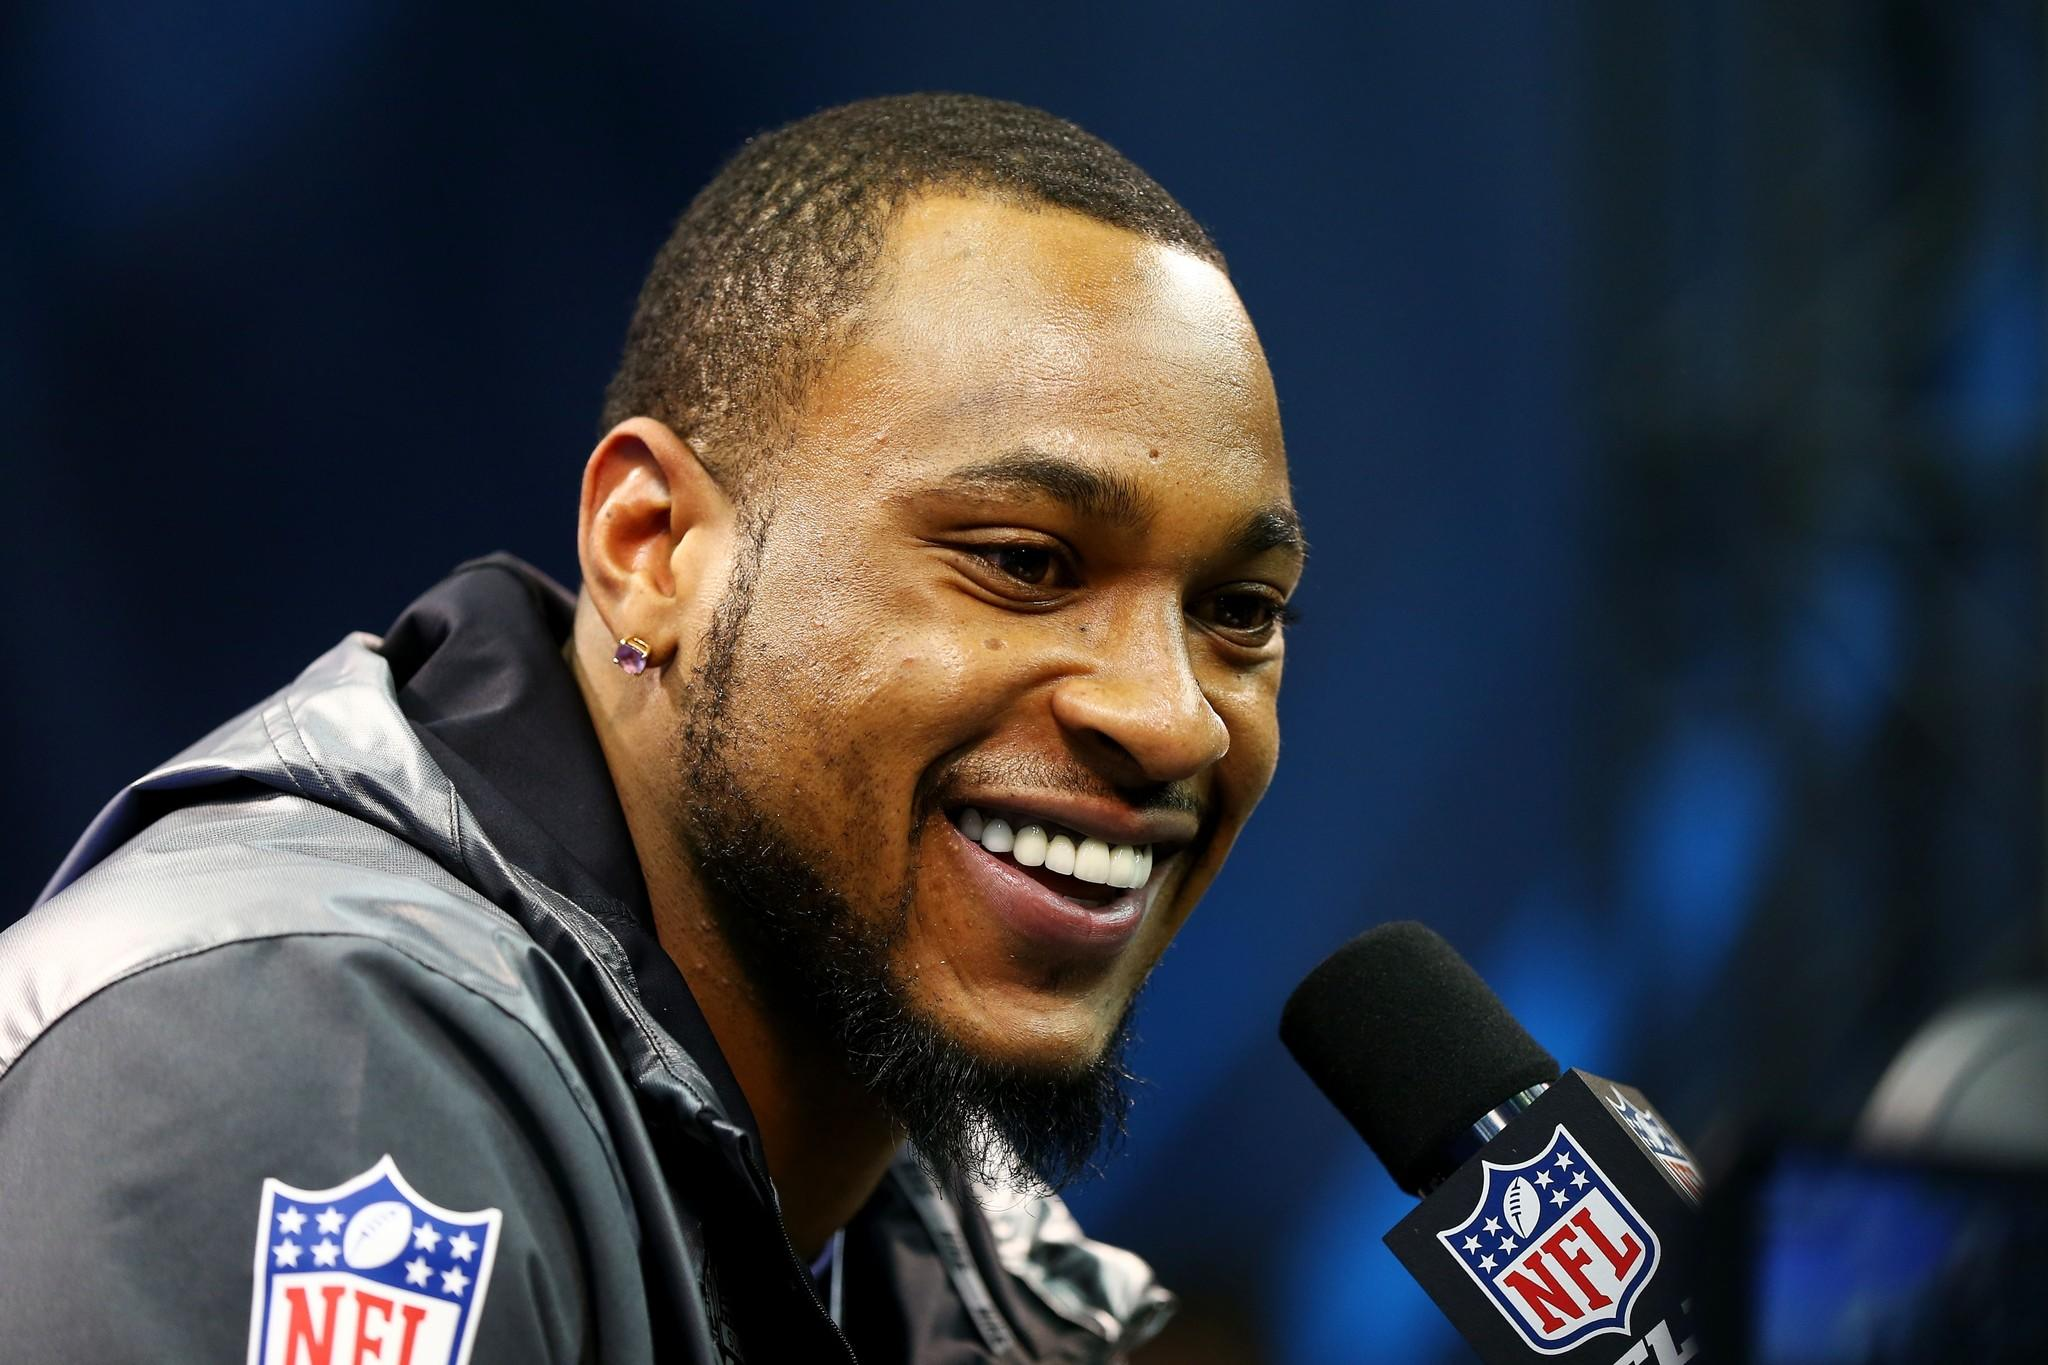 Wide receiver Percy Harvin #11 of the Seattle Seahawks speaks to the media during Super Bowl XLVIII Media Day at the Prudential Center on January 28, 2014 in Newark, New Jersey. Super Bowl XLVIII will be played between the Seattle Seahawks and the Denver Broncos on February 2.